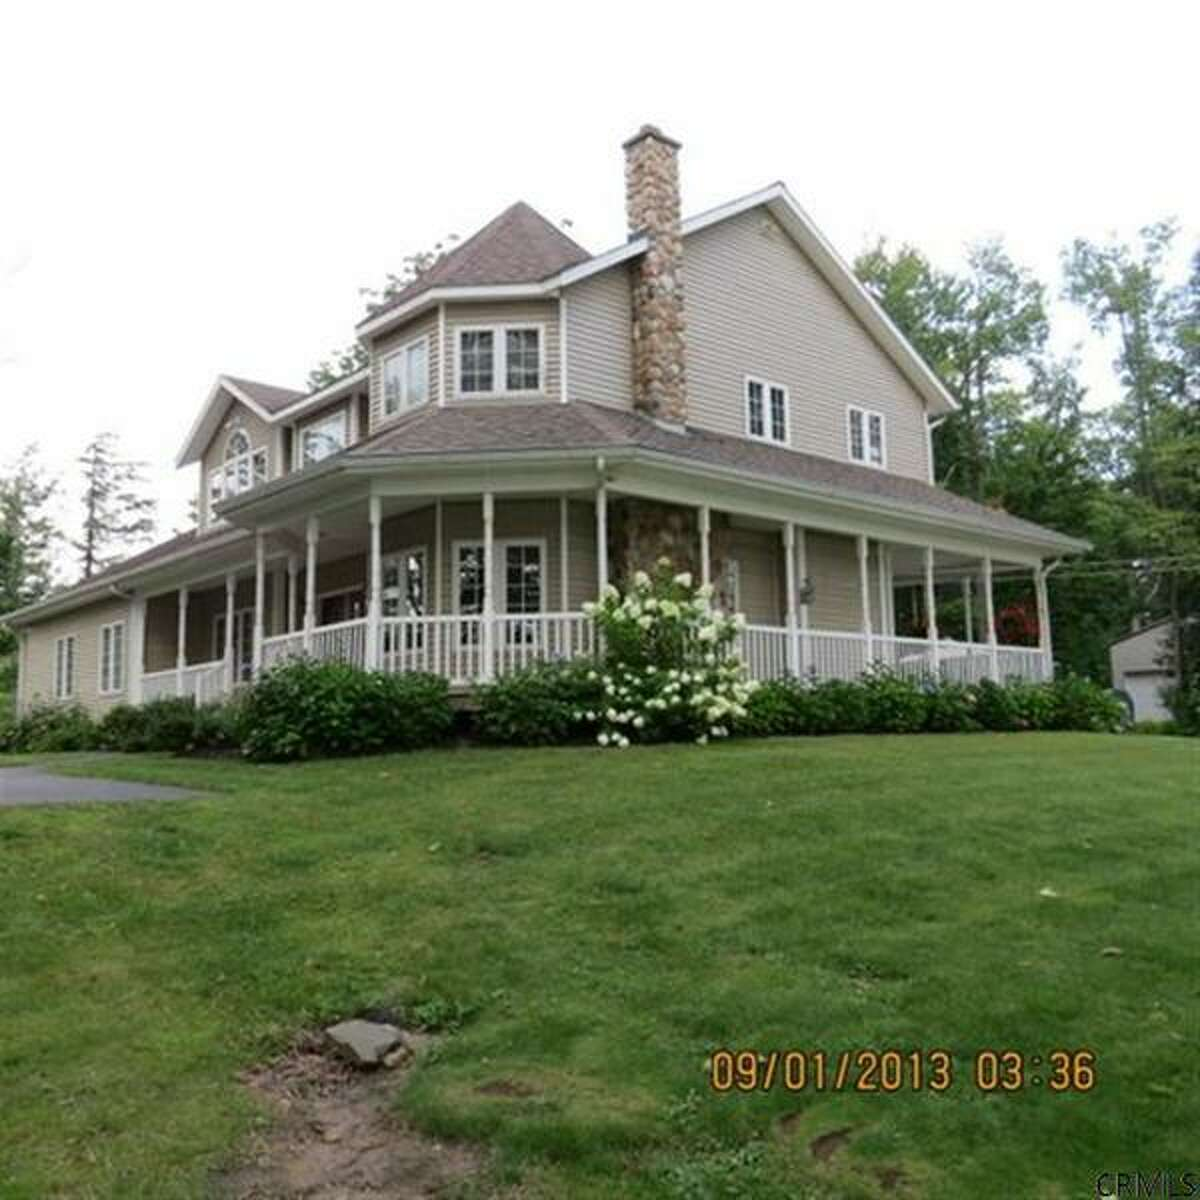 $99,000,000 . 8287 MARIAVILLE RD, Pattersonville, NY 12137.View this listing.